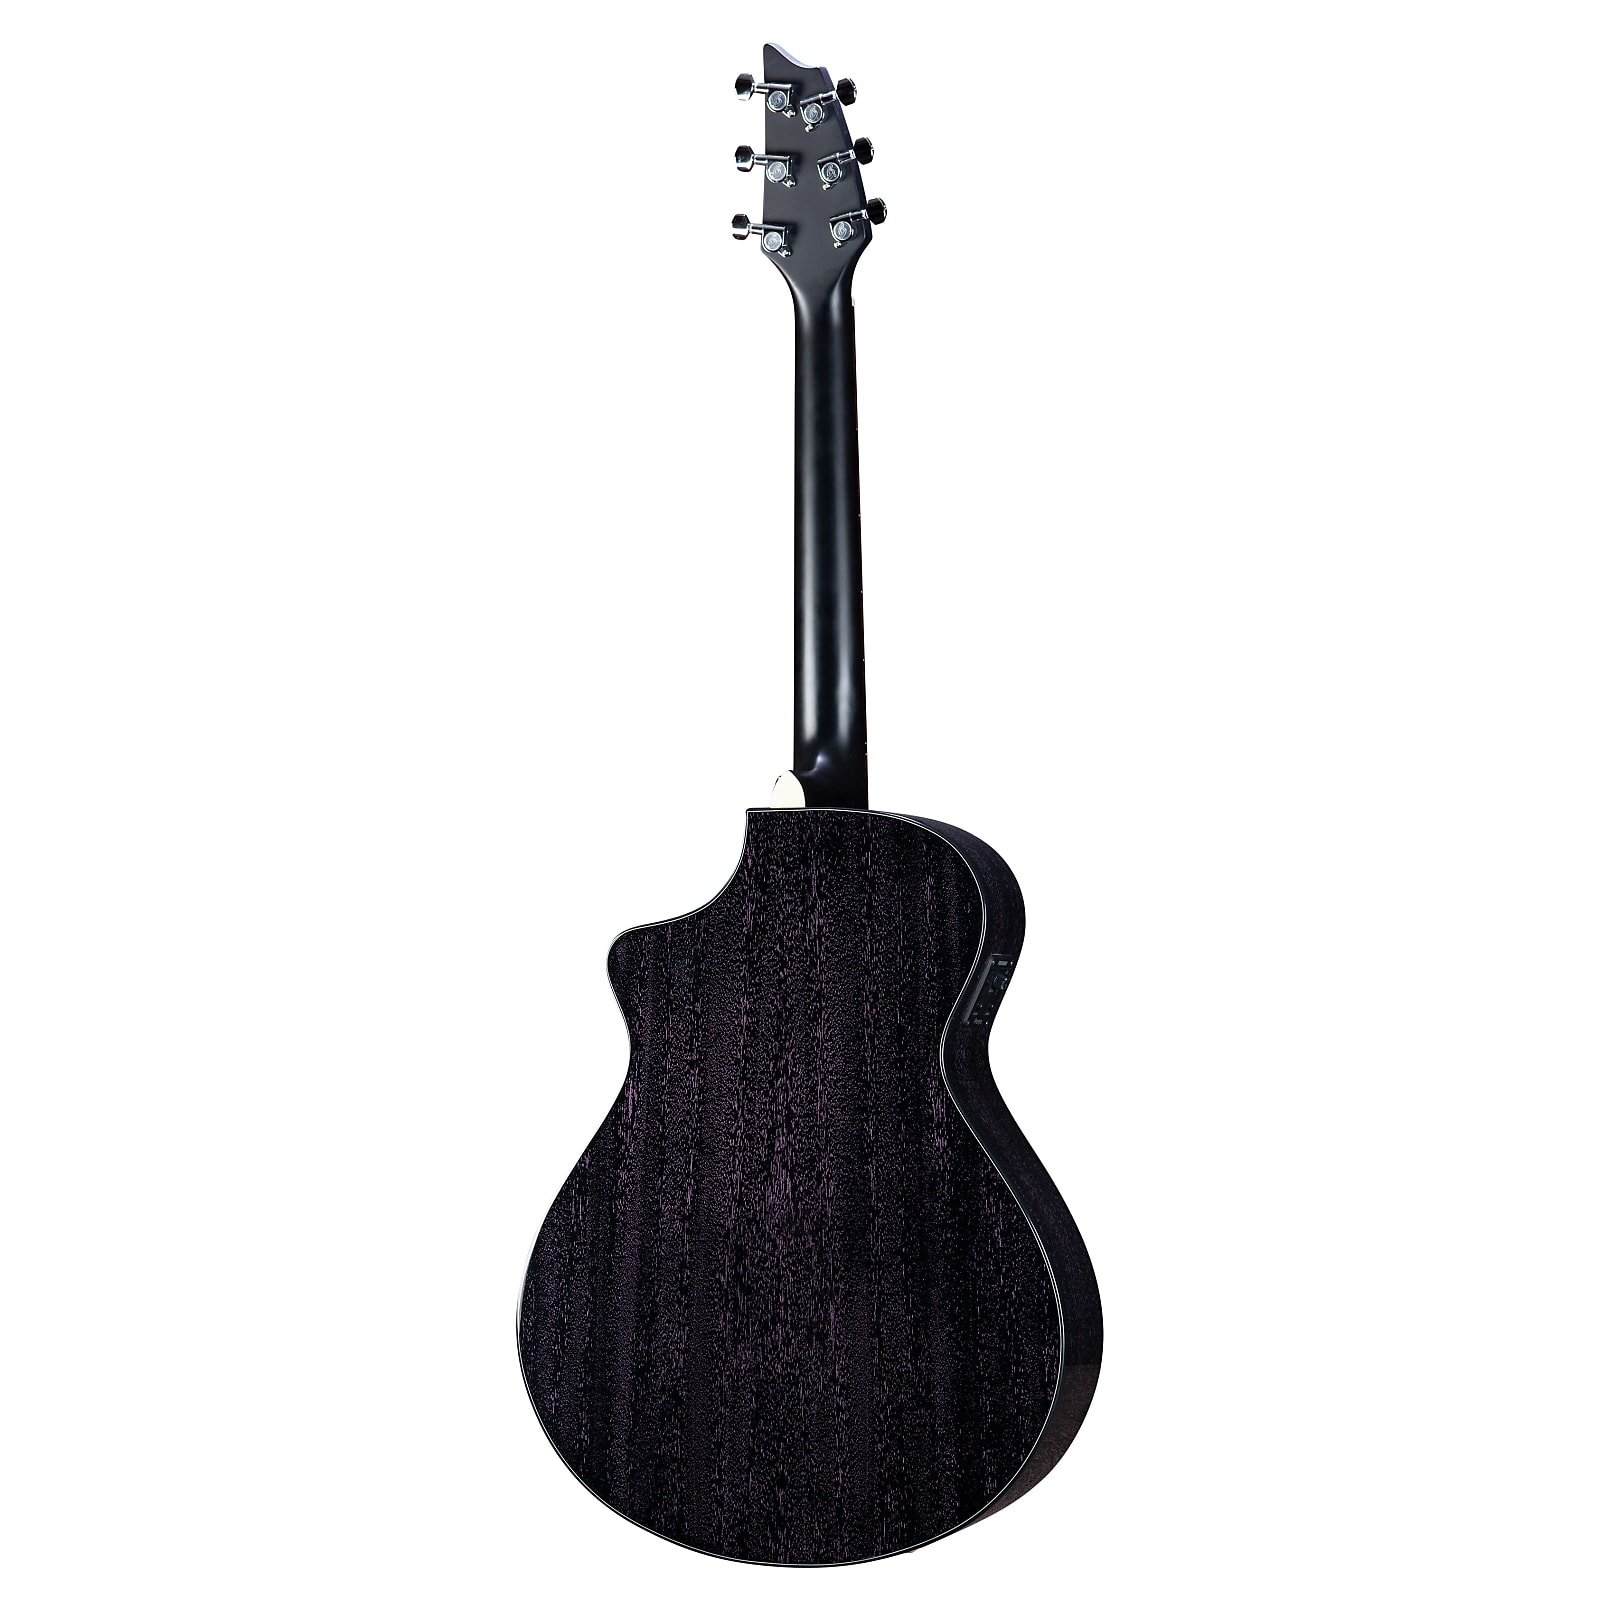 Breedlove Rainforest S Concert Orchid CE African mahogany